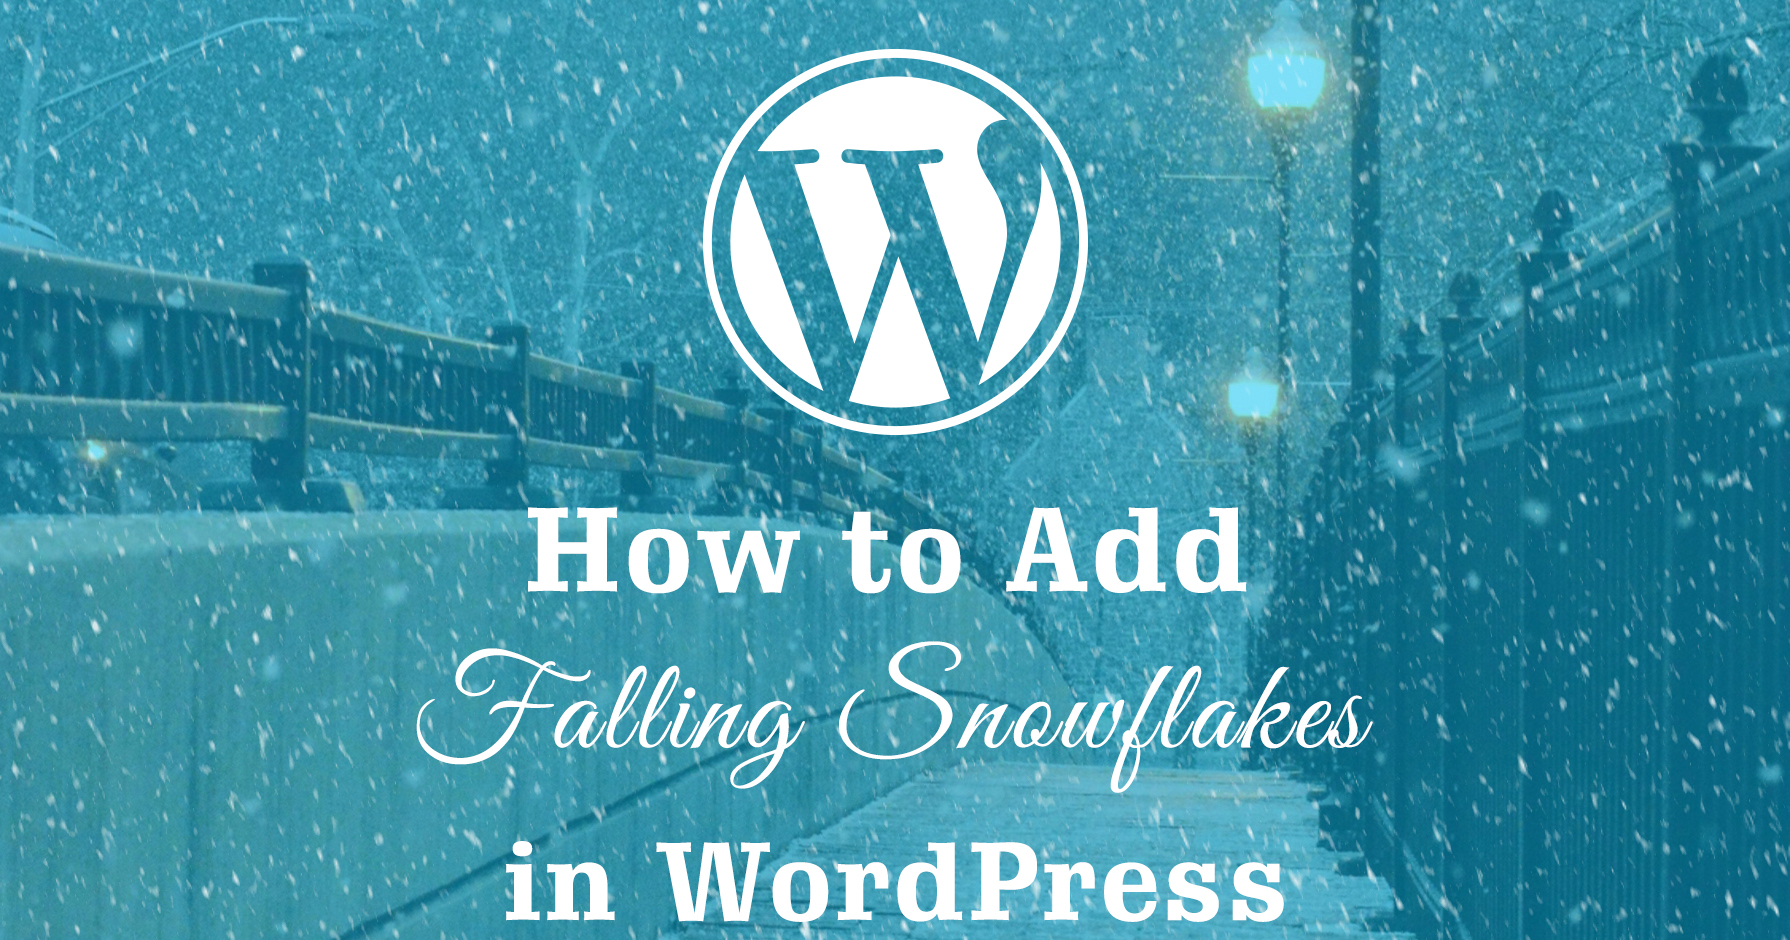 How to Add Falling Snowflakes to Your Website